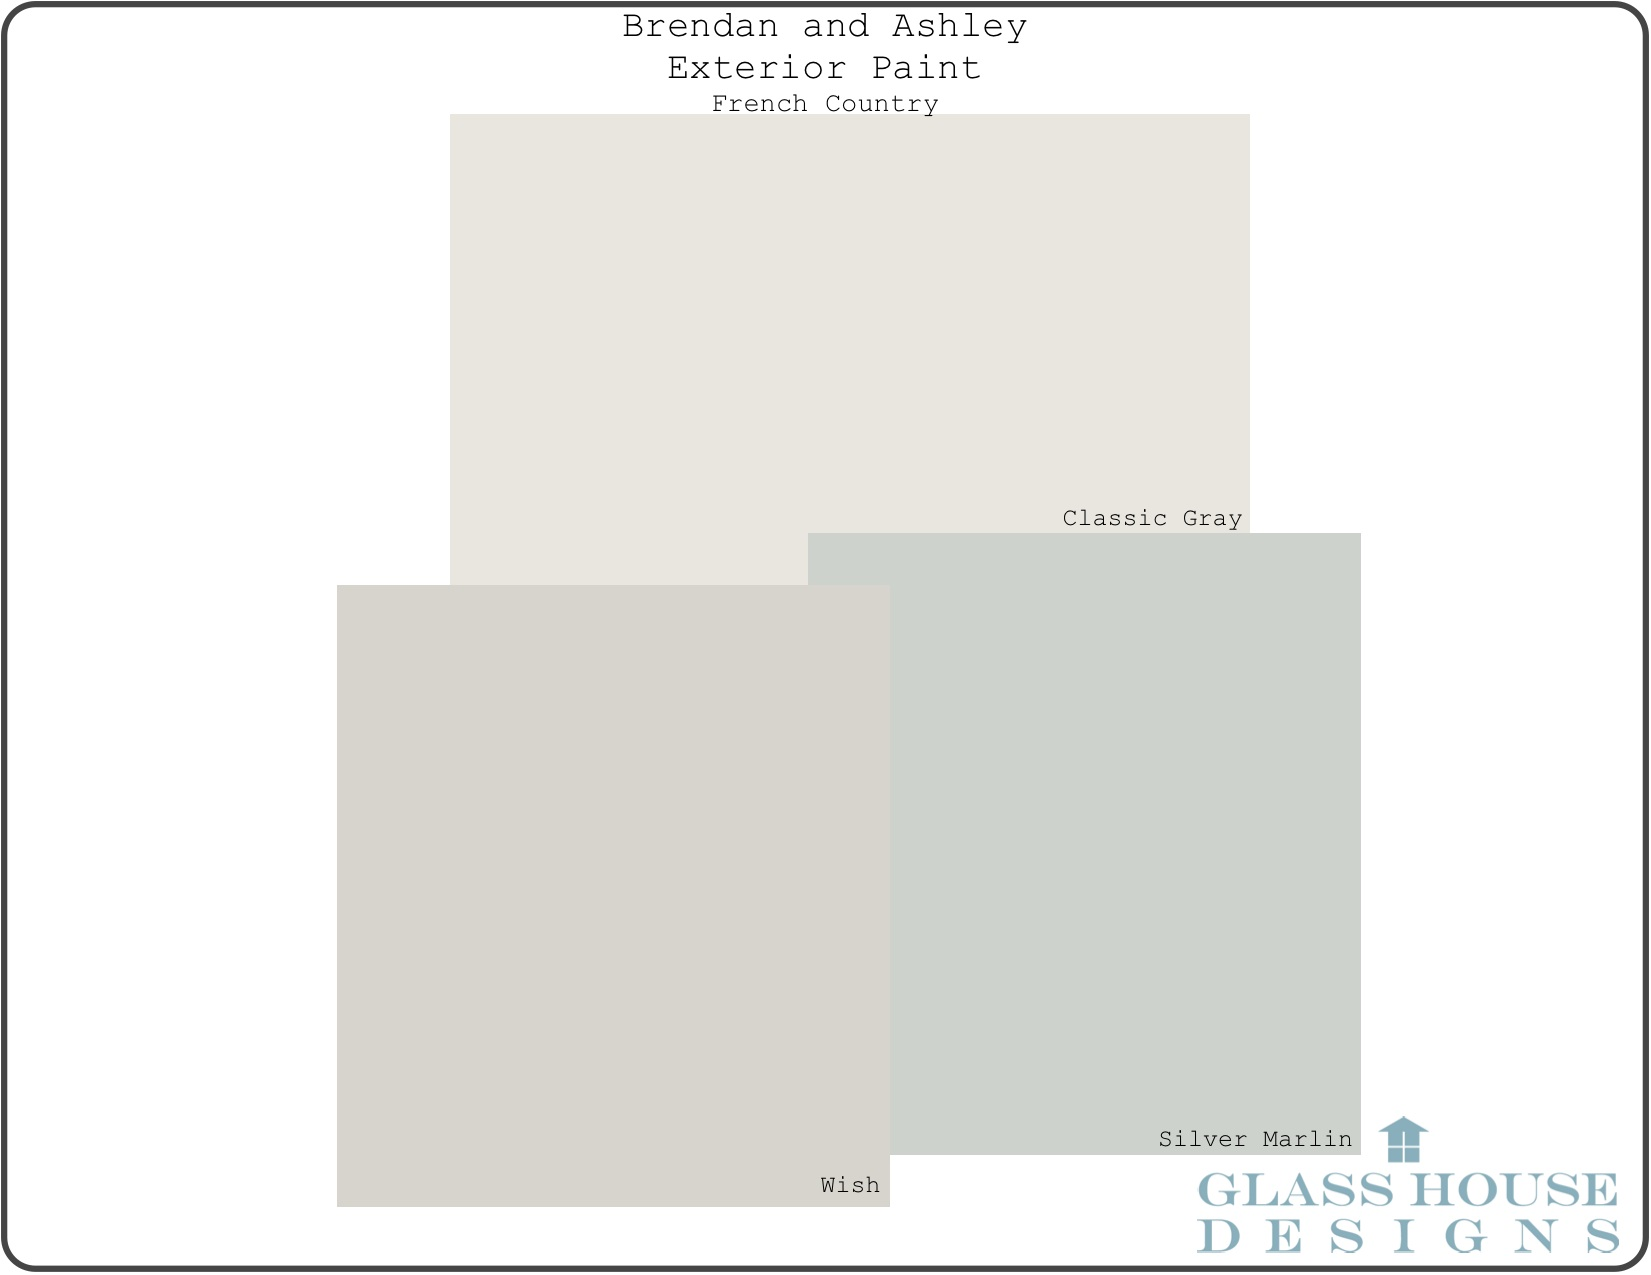 Best french for walls paint home design online for French country wall paint colors